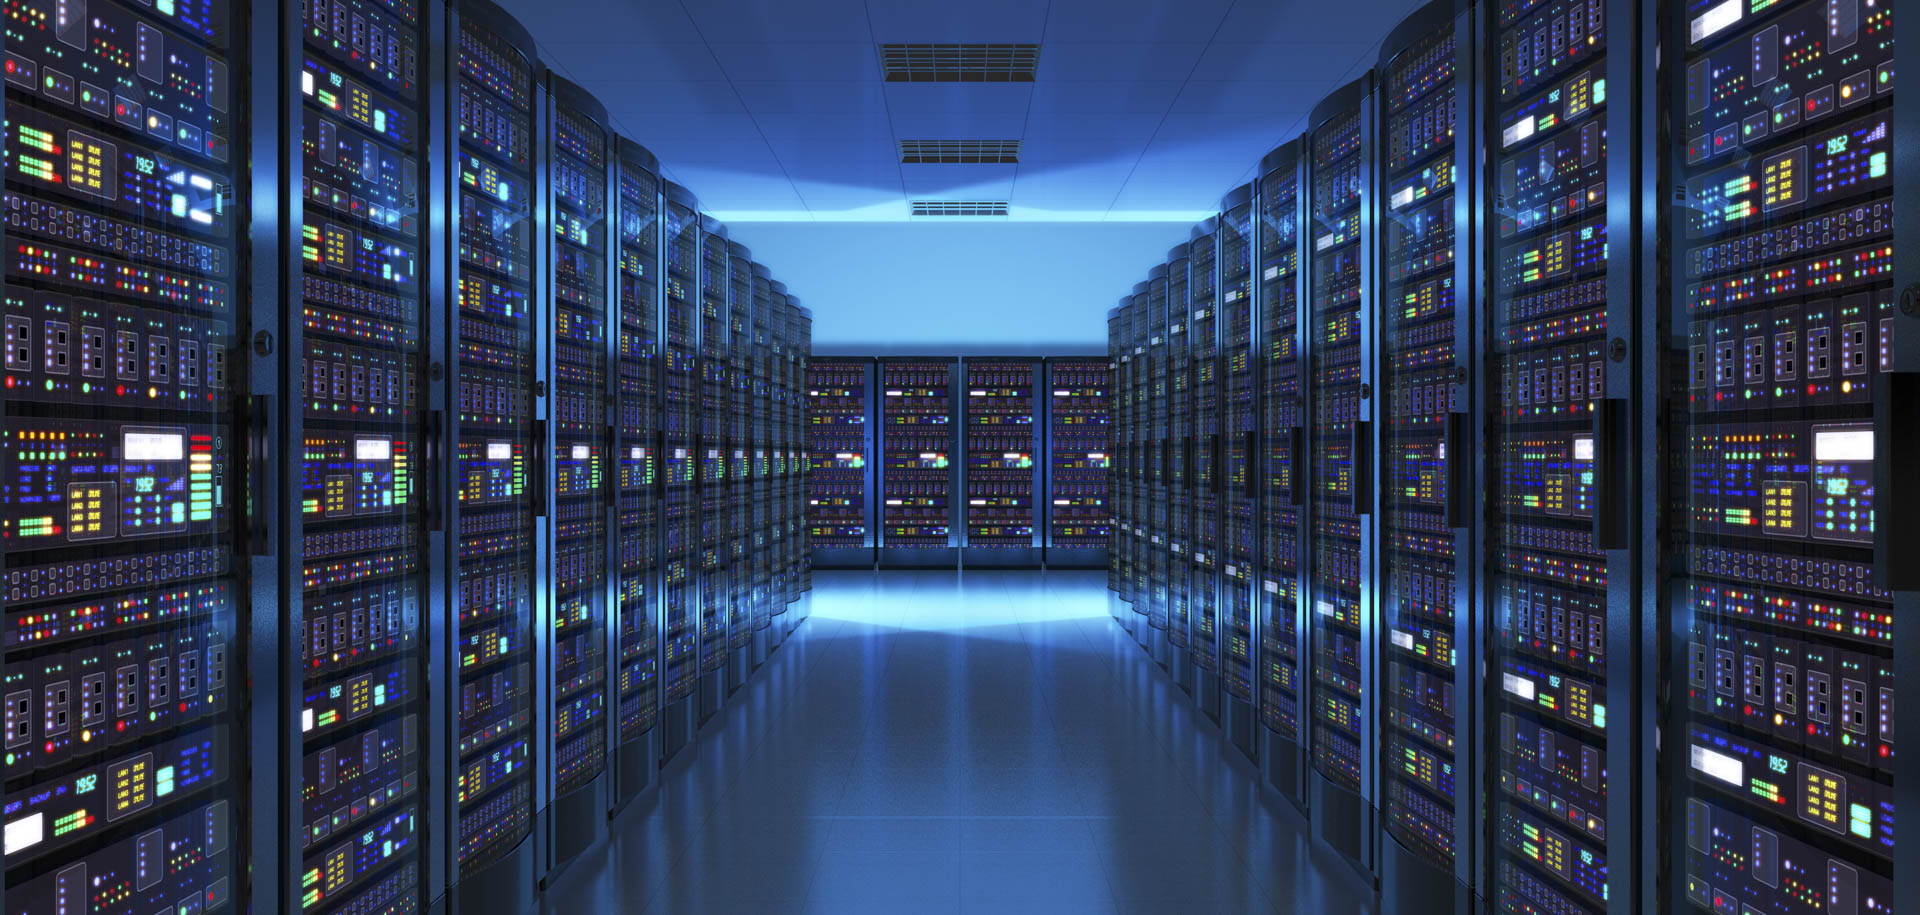 Choosing The Right Cloud BackUp Solution For Your Business